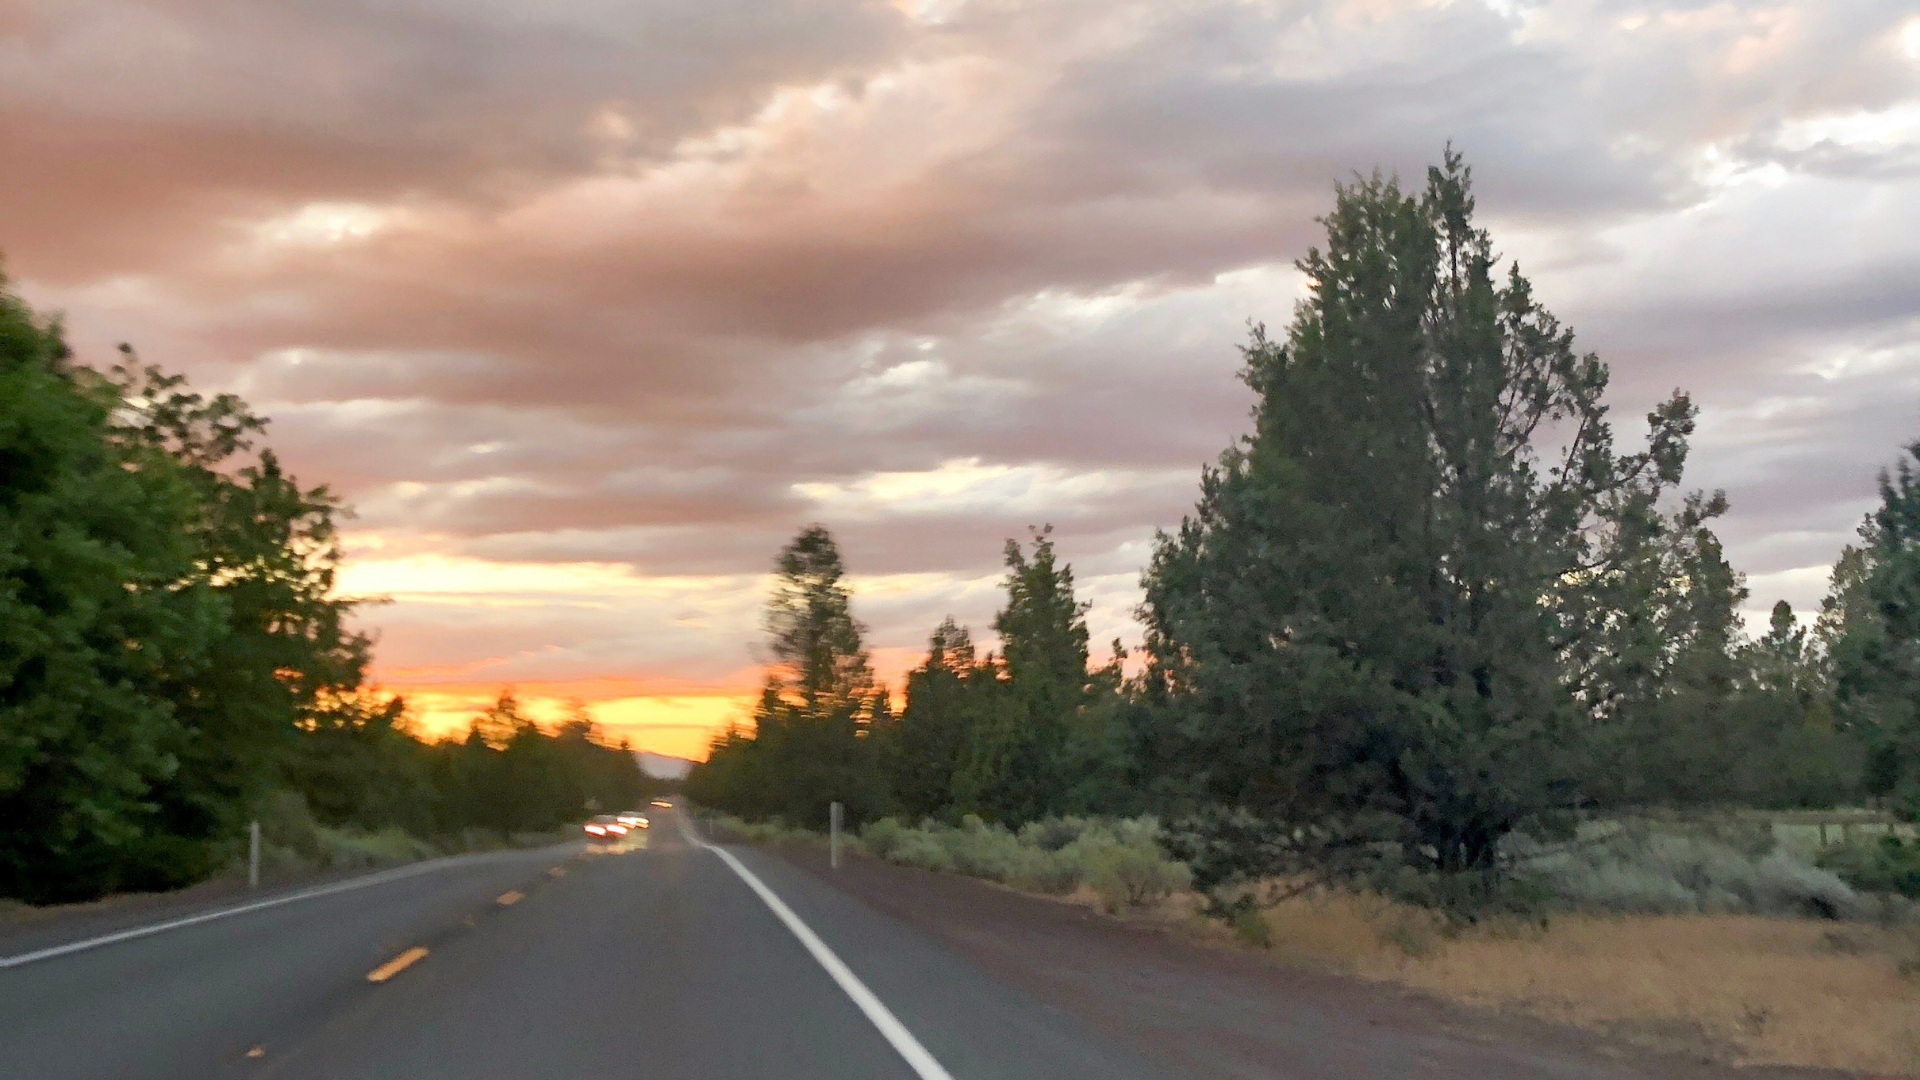 A sunset drive from Bend to Sisters in Central Oregon.